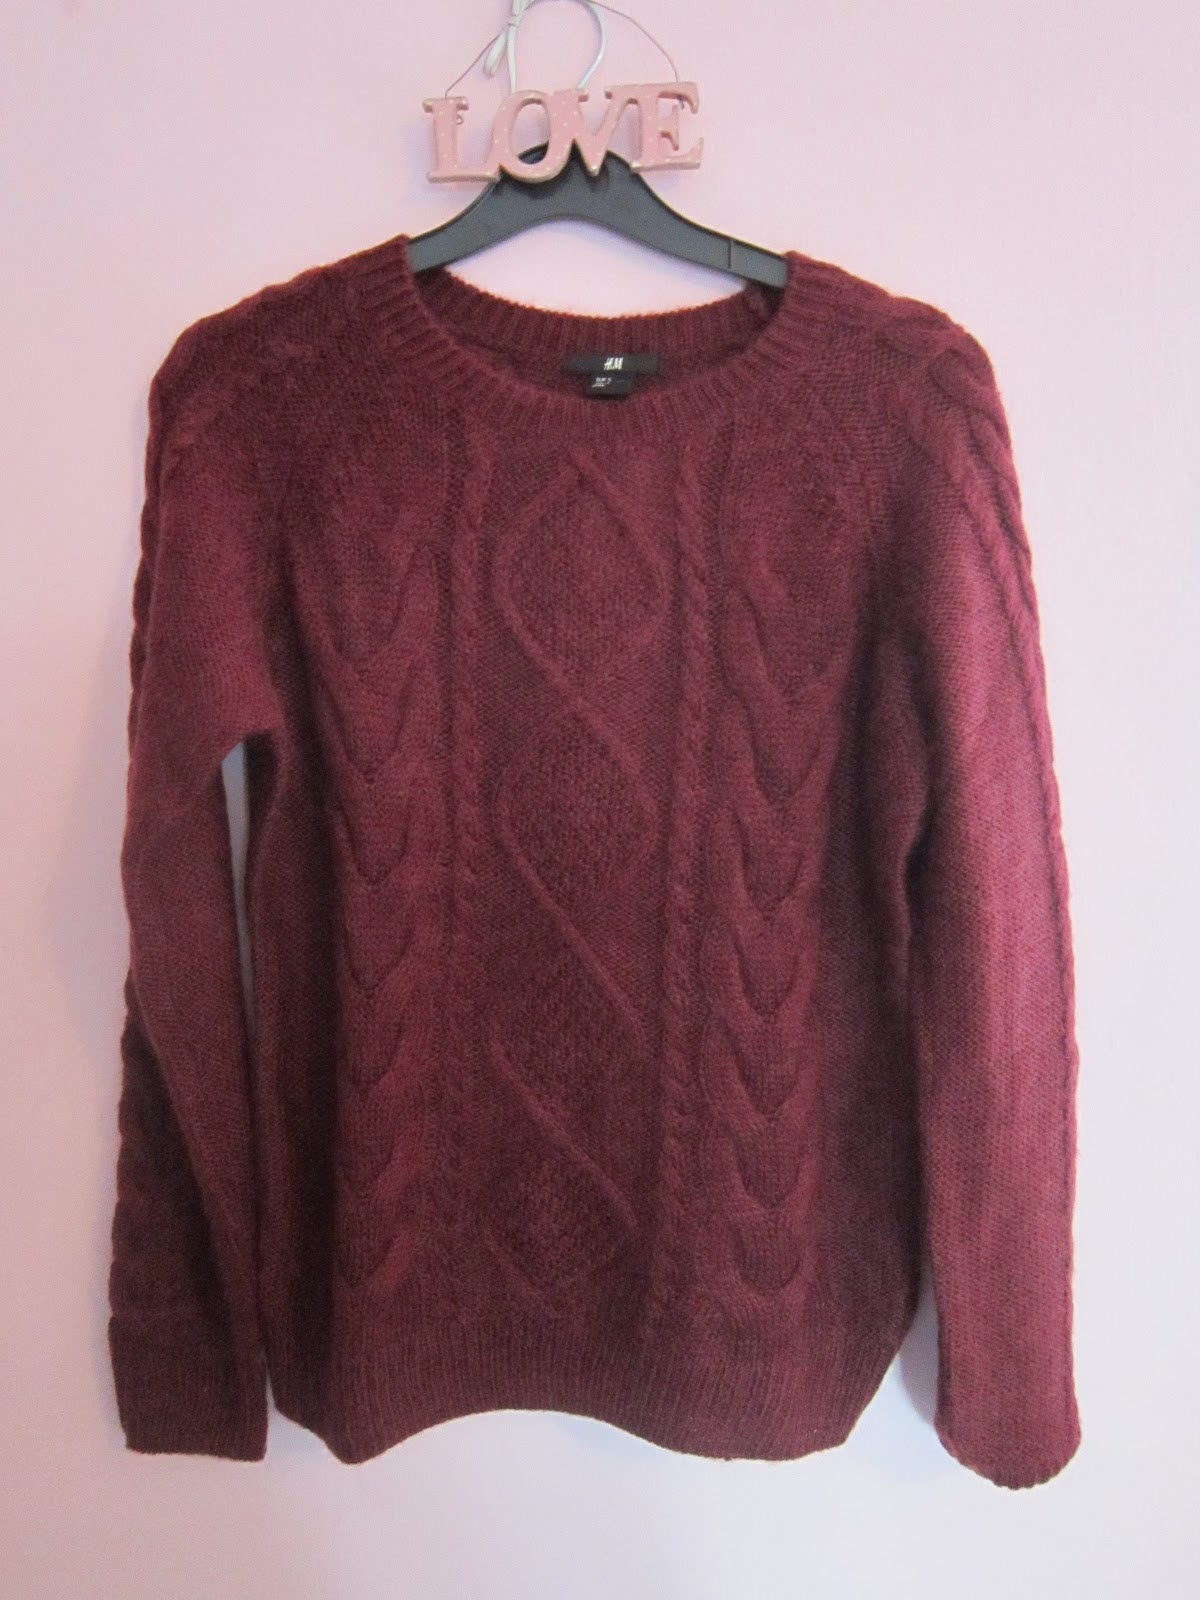 542713410db Another H M purchase  it s my favourite shop didn t you know! I bought this  lovely cable knit jumper in burgandy red for really cold days.